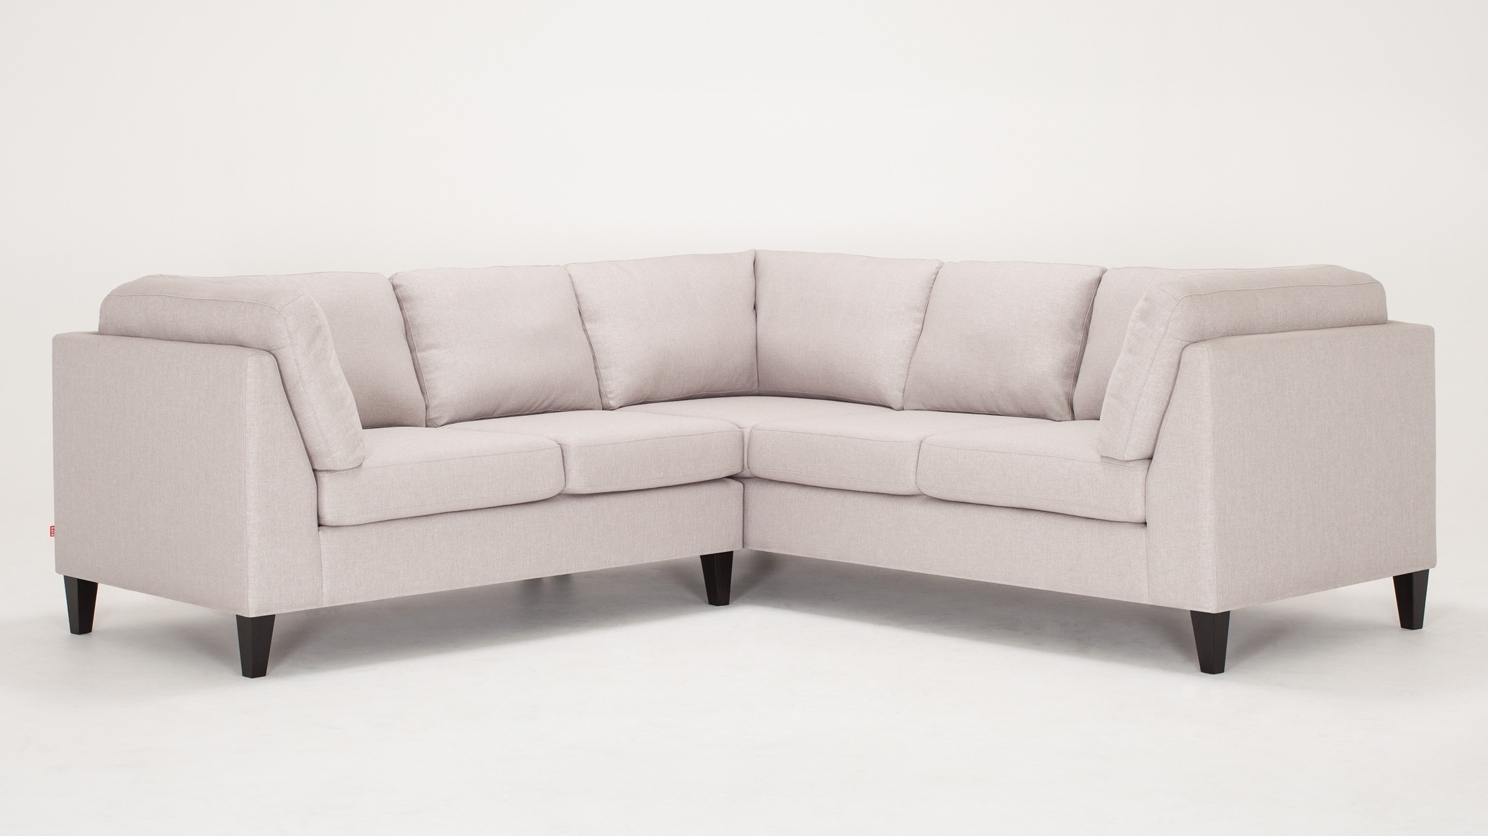 Salema 2 Piece Sectional Sofa – Fabric With Regard To Eq3 Sectional Sofas (View 13 of 15)